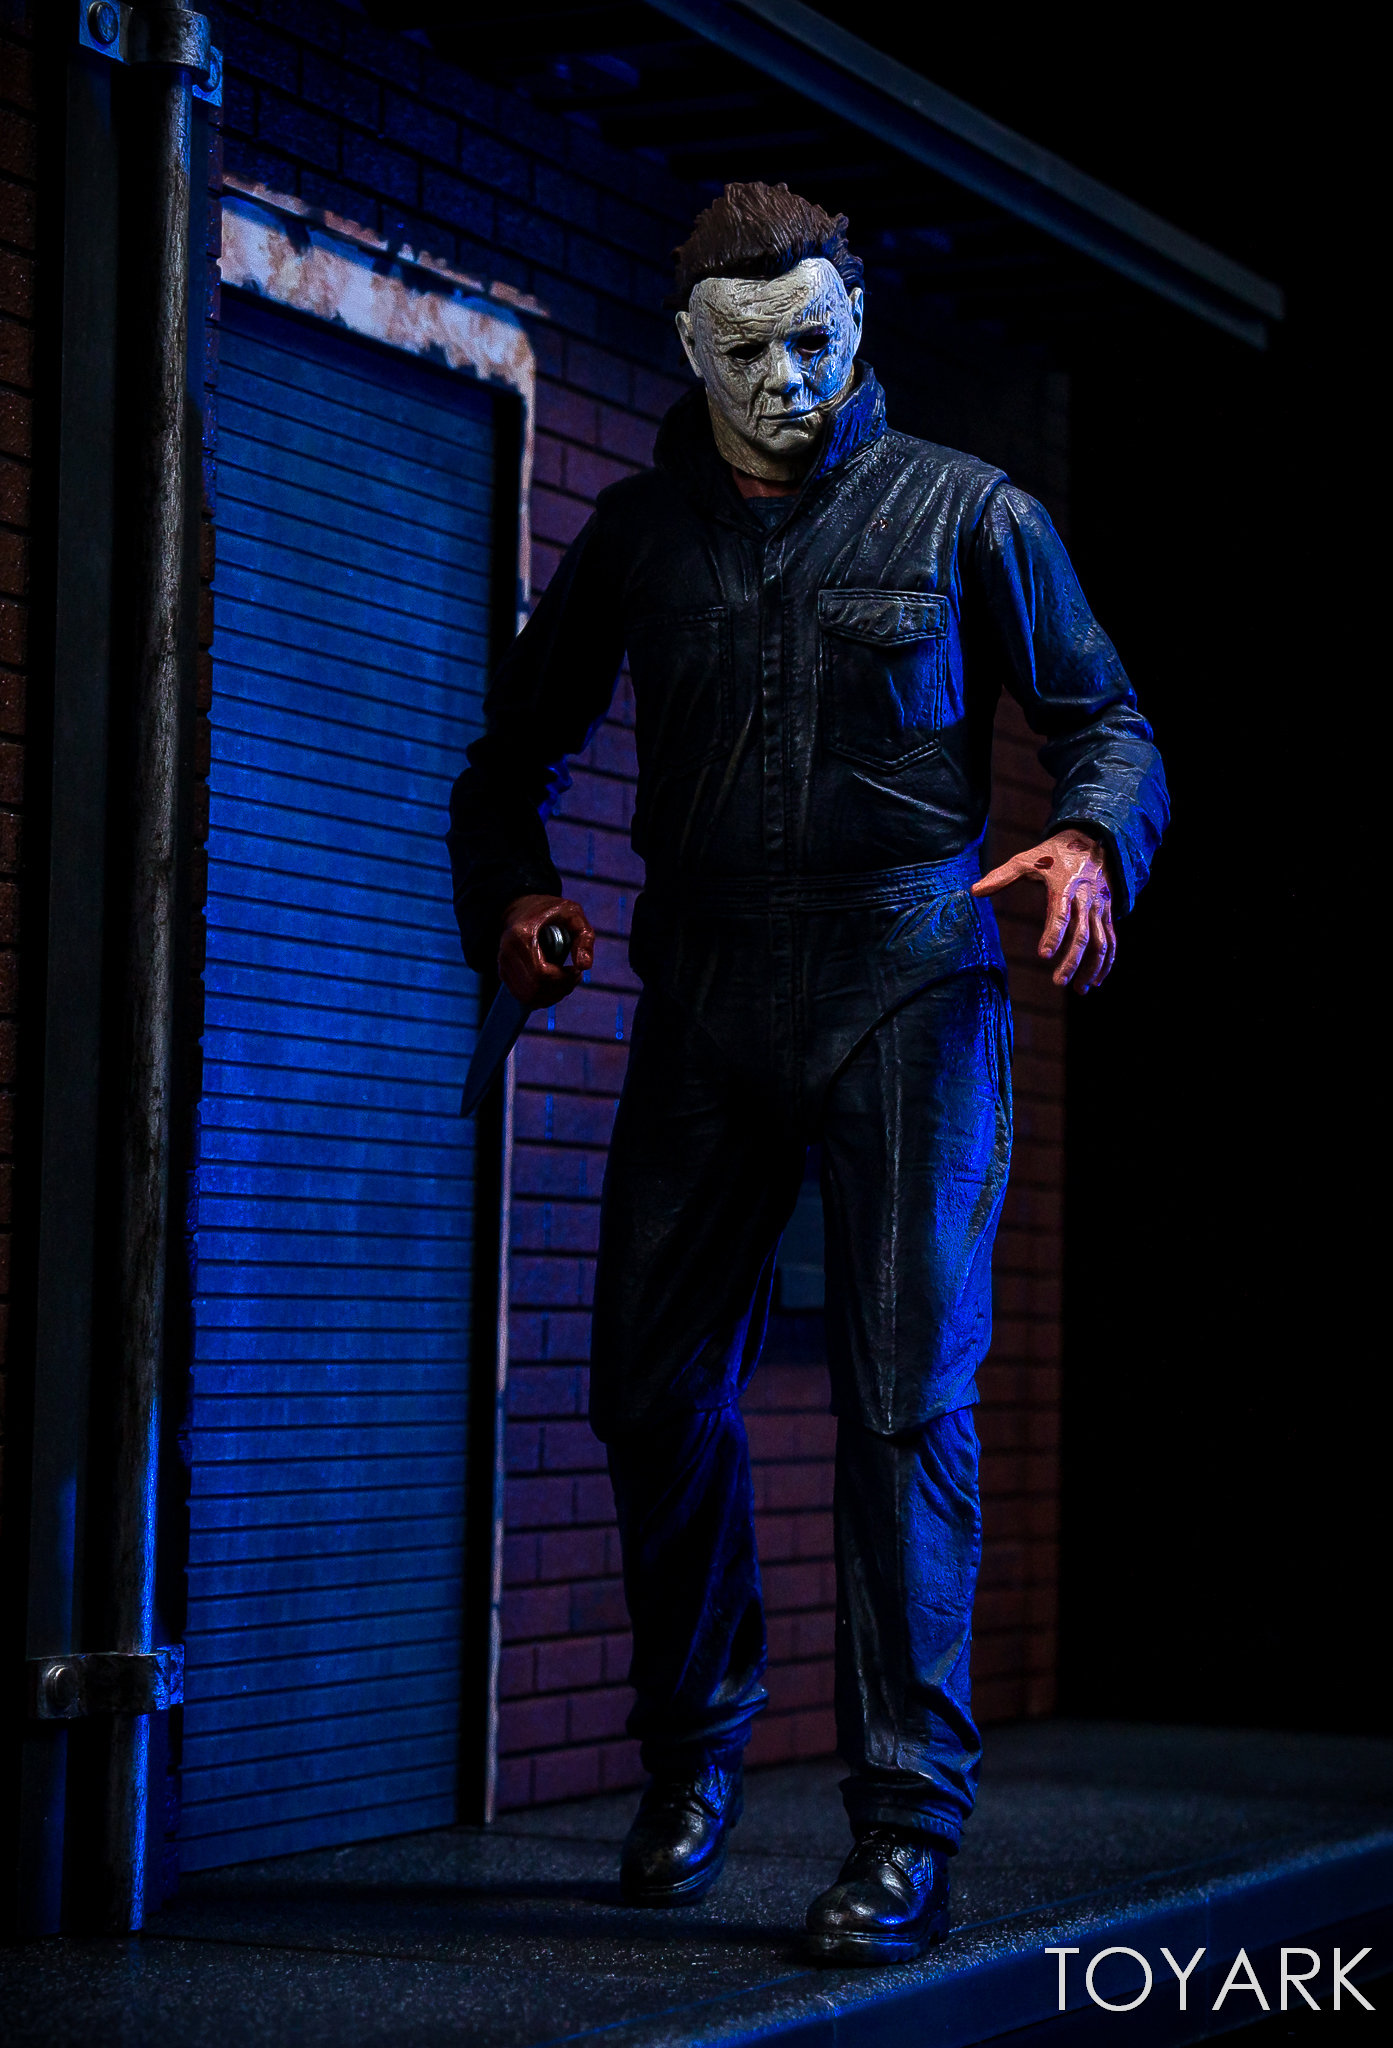 https://news.toyark.com/wp-content/uploads/sites/4/2018/11/Halloween-2018-Michael-Myers-Figure-040.jpg